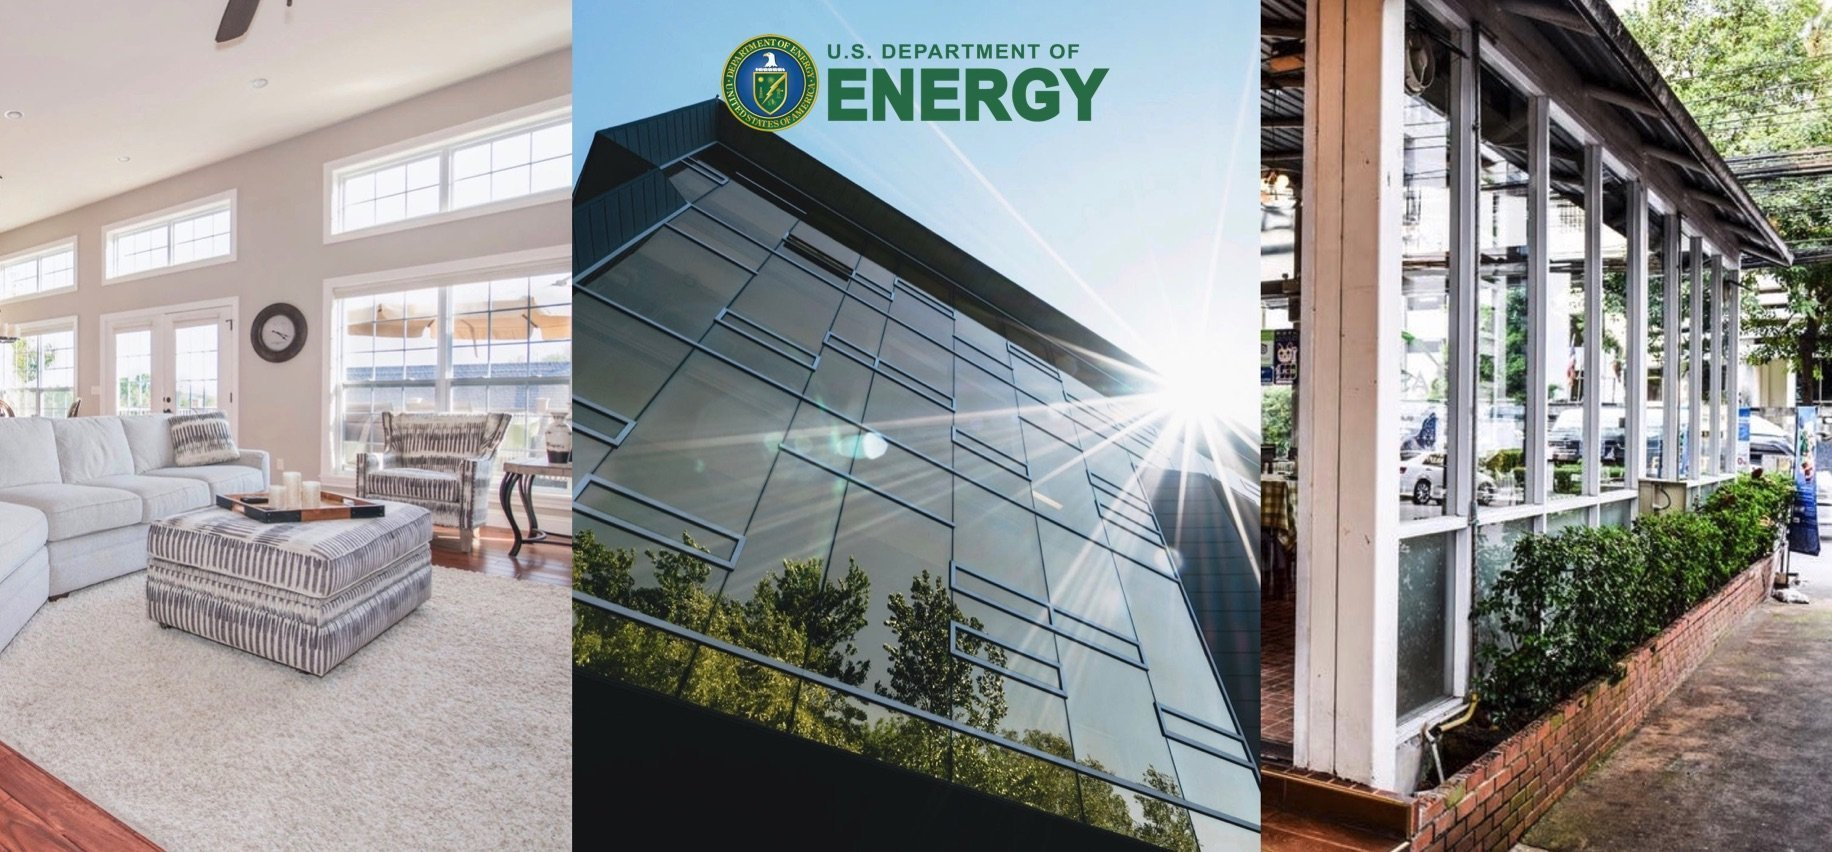 Energy Saving Benefits of Window Film Discussed by U.S. Department of Energy - Home and Commercial Window Tinting in Iowa City and Cedar Rapids, Iowa